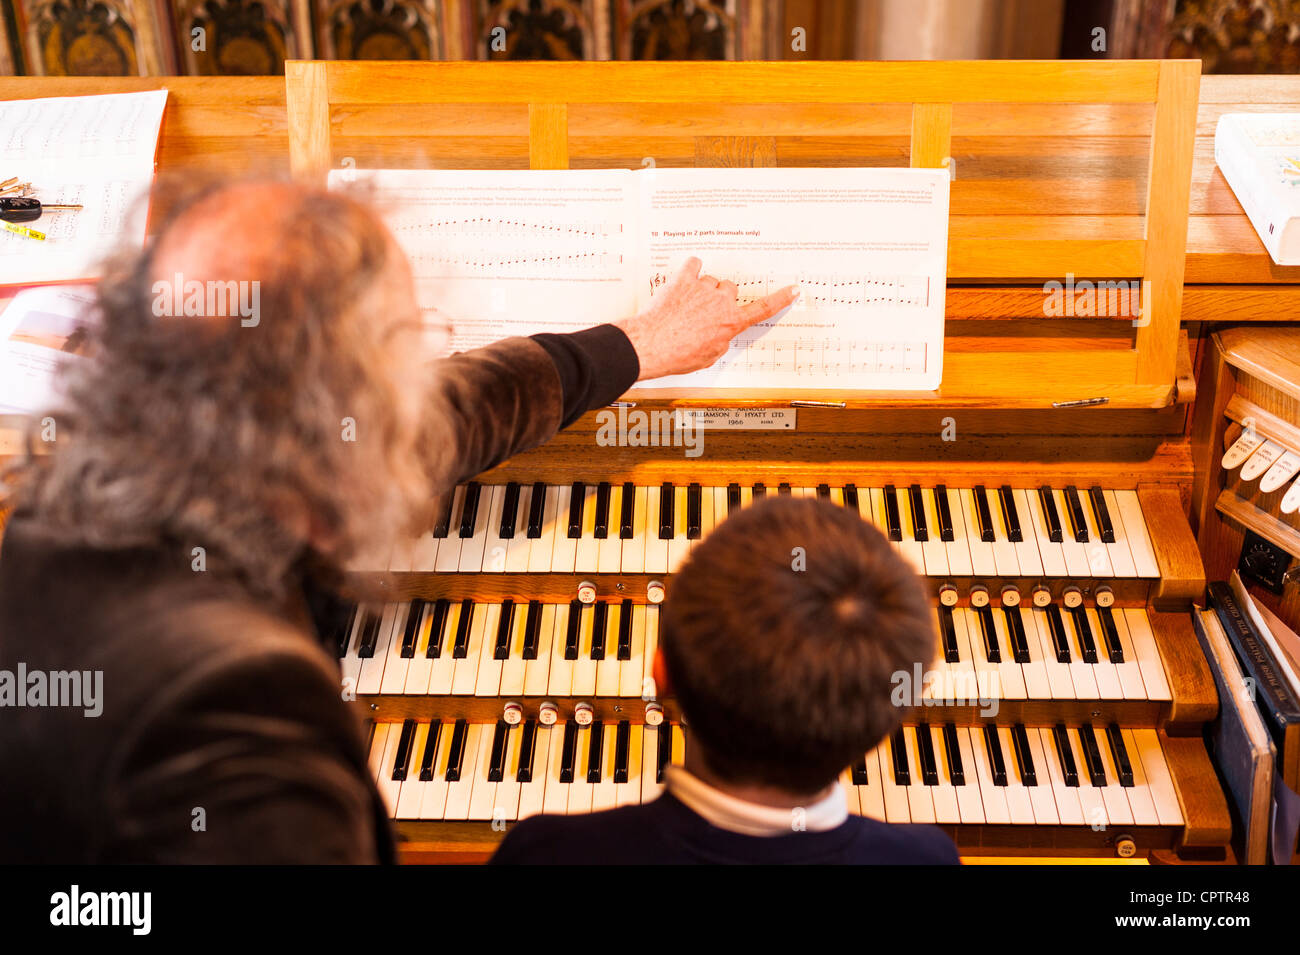 A 12 year old boy having tuition on playing a church organ with point of focus on the music in the Uk - Stock Image